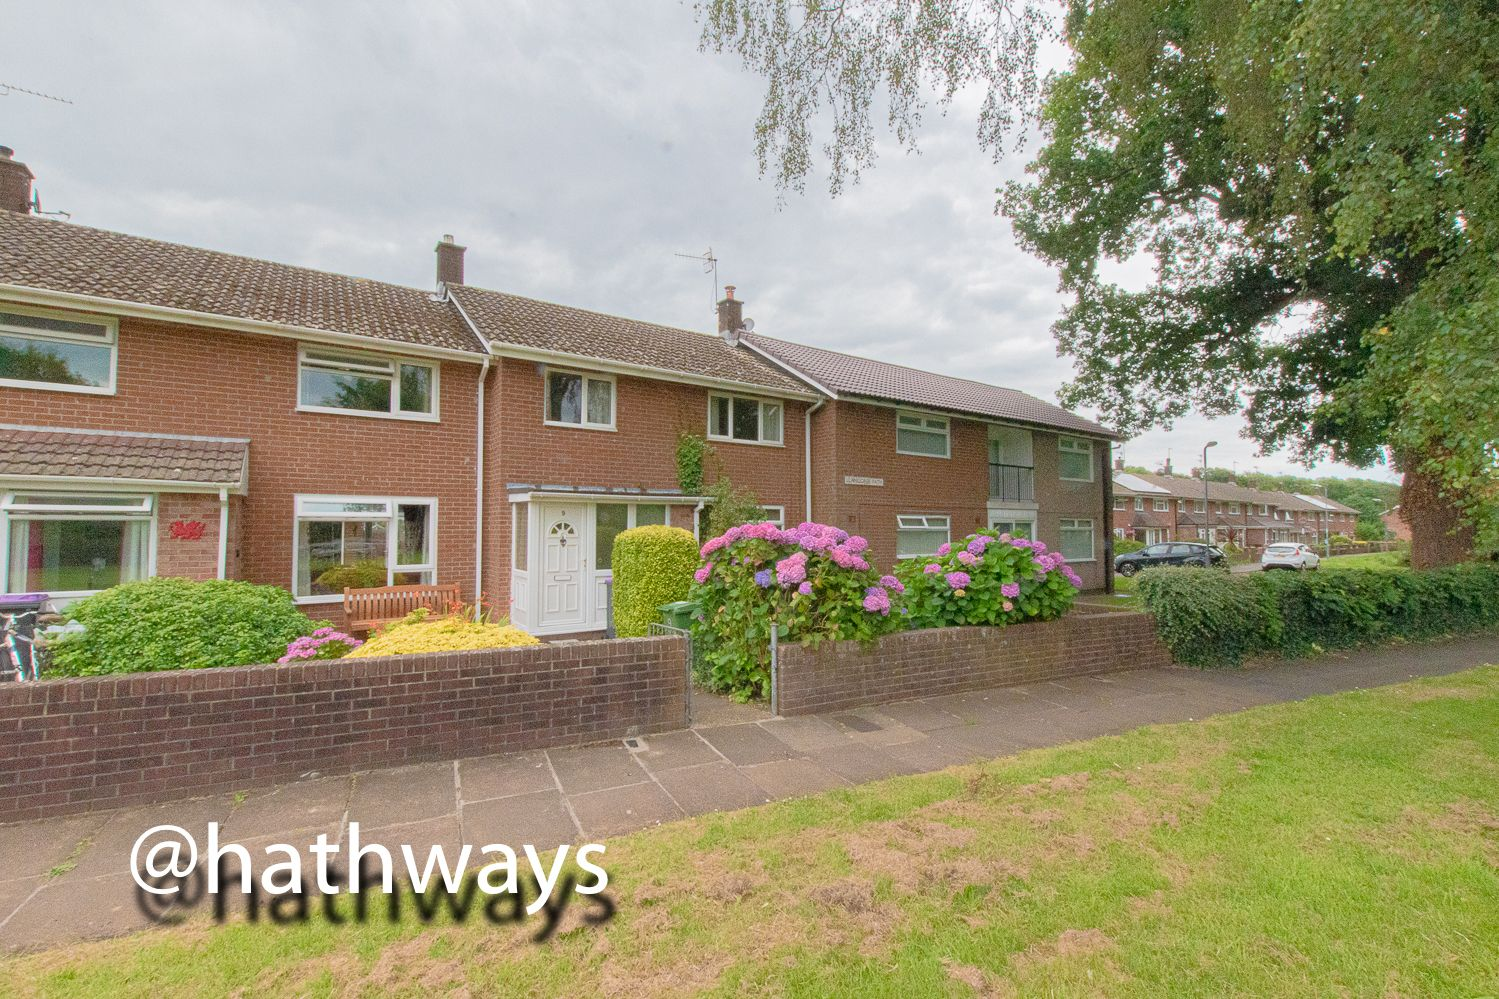 3 bed house for sale in Llangorse Path, NP44